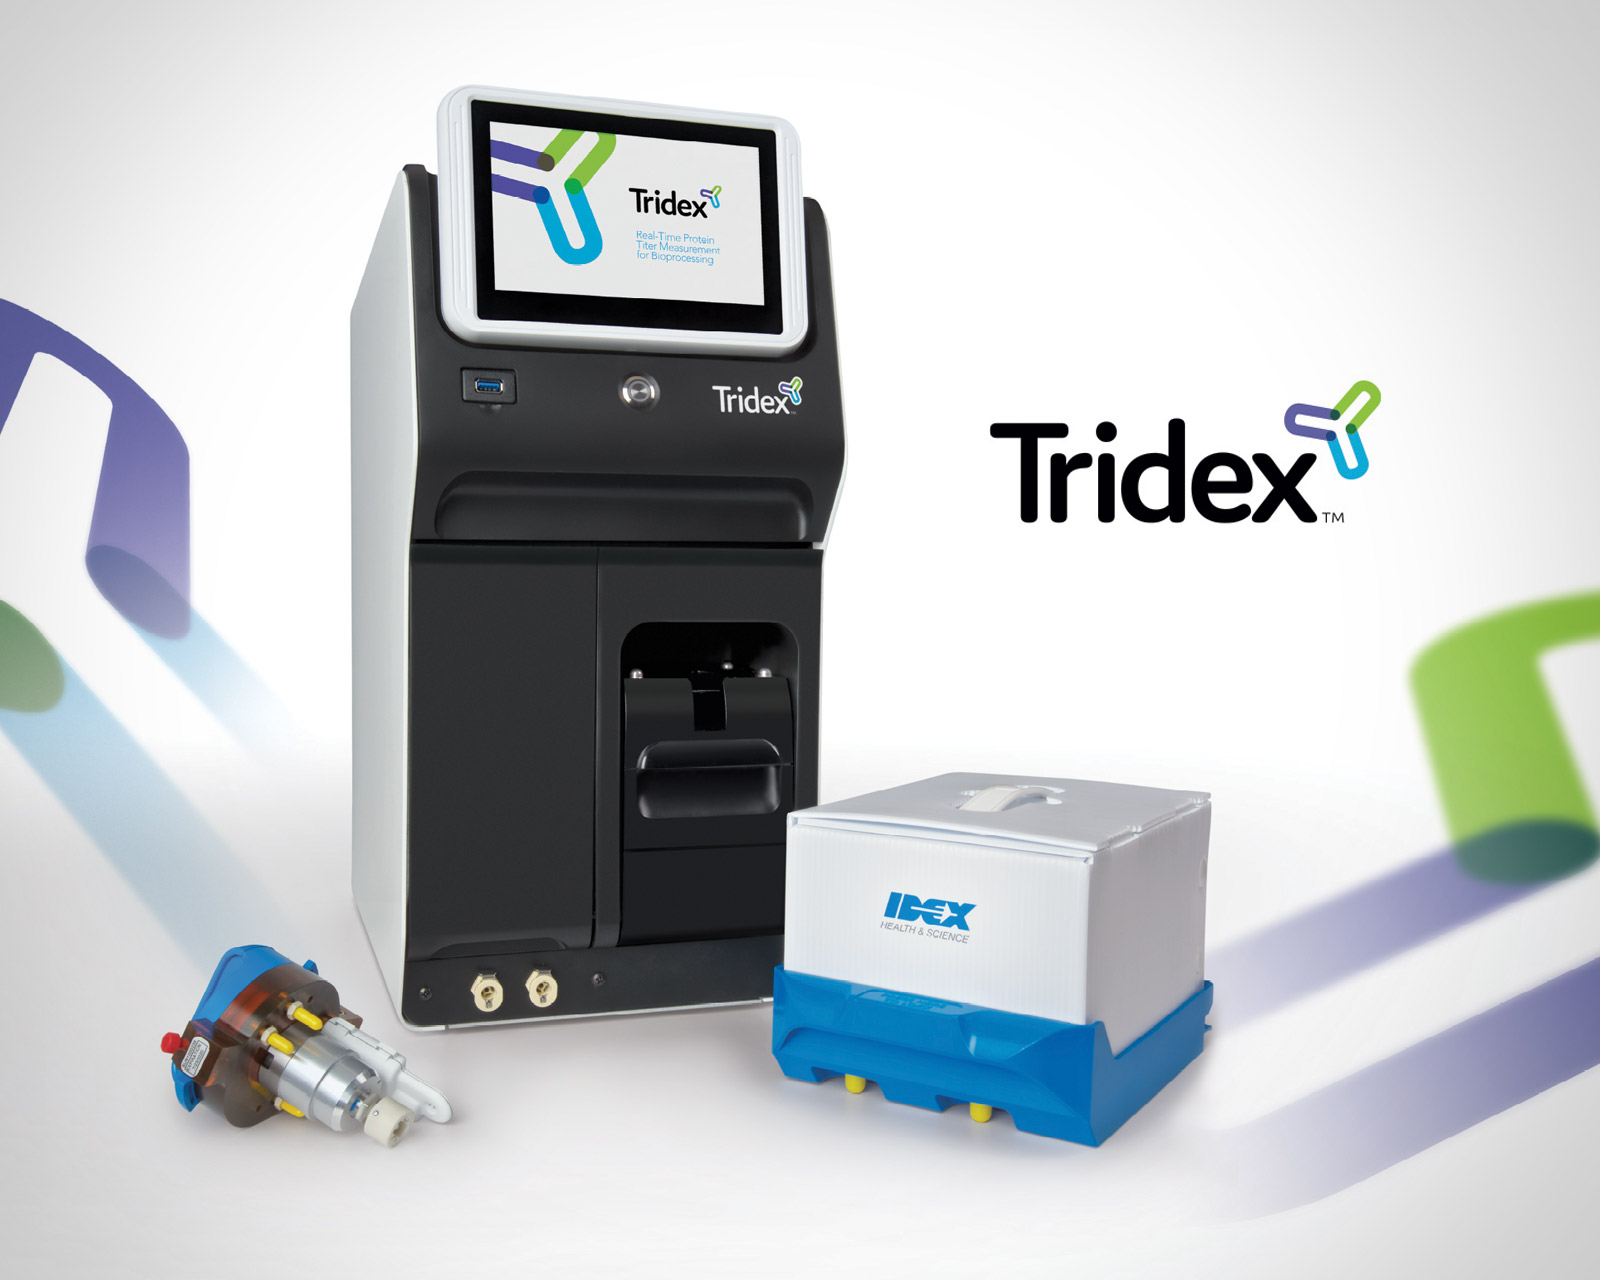 Tridex Brand Launch